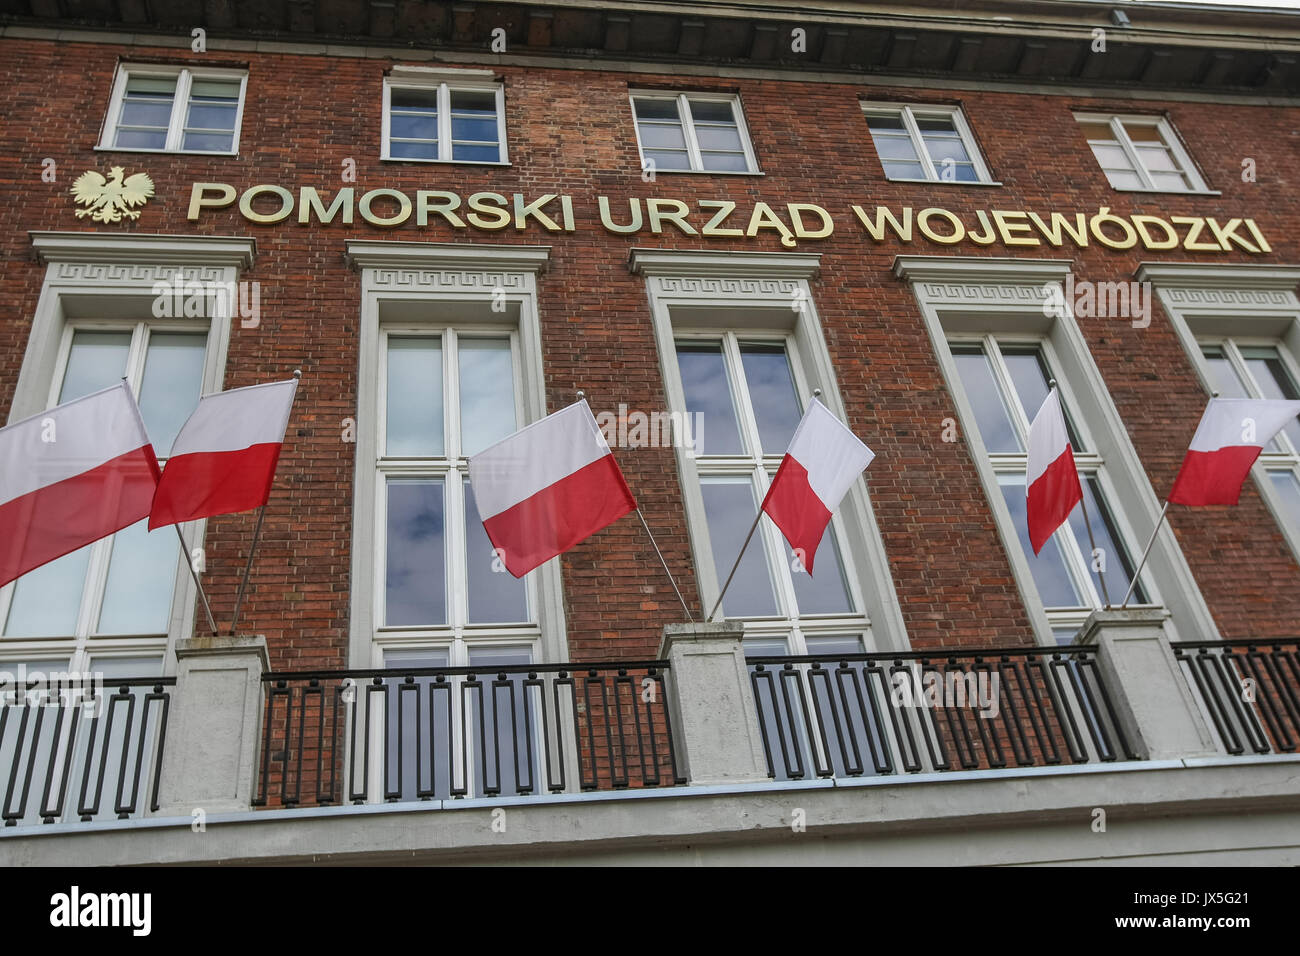 Gdansk, Poland. 15th August, 2017. PO (Civic Platform) Parliament members: Slawomir Neumann, Stanislaw Lamczyk and Marshal of the Pomorskie Voivodeship Mieczyslaw Struk during the press conference are seen in Gdansk, Poland on 15 August 2017  . Opposition politicians accuse the government of inactivity and lack of proper assistance to victims of the violent storms that hit Poland last weekend. Credit: Michal Fludra/Alamy Live News - Stock Image